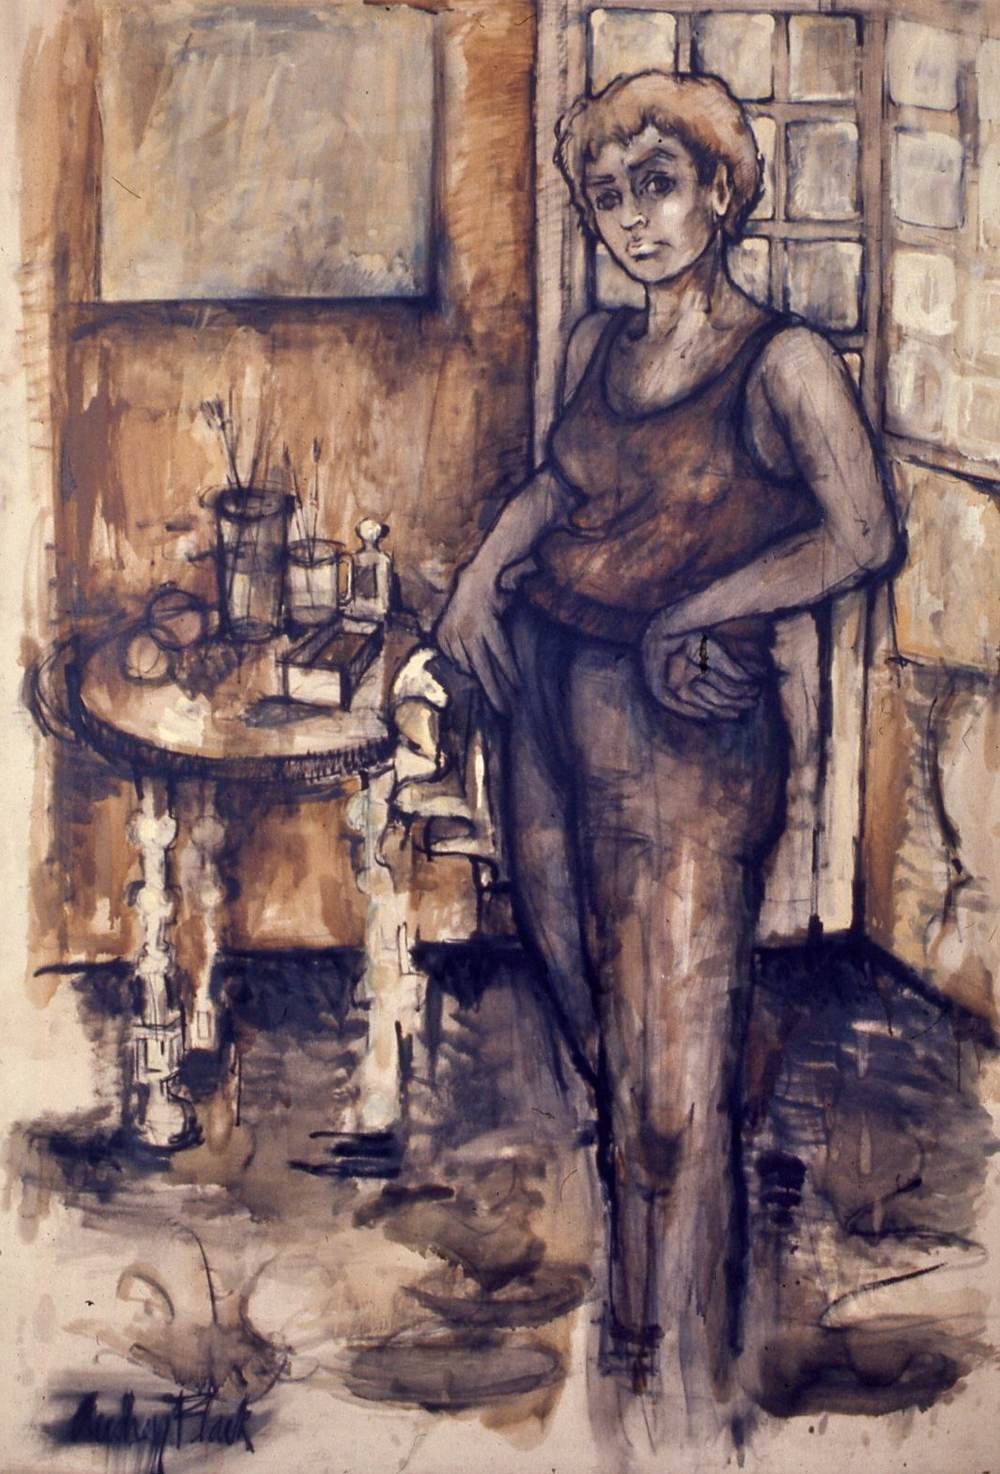 Self-Portrait in Tank Top, 1956-57, 70x48""